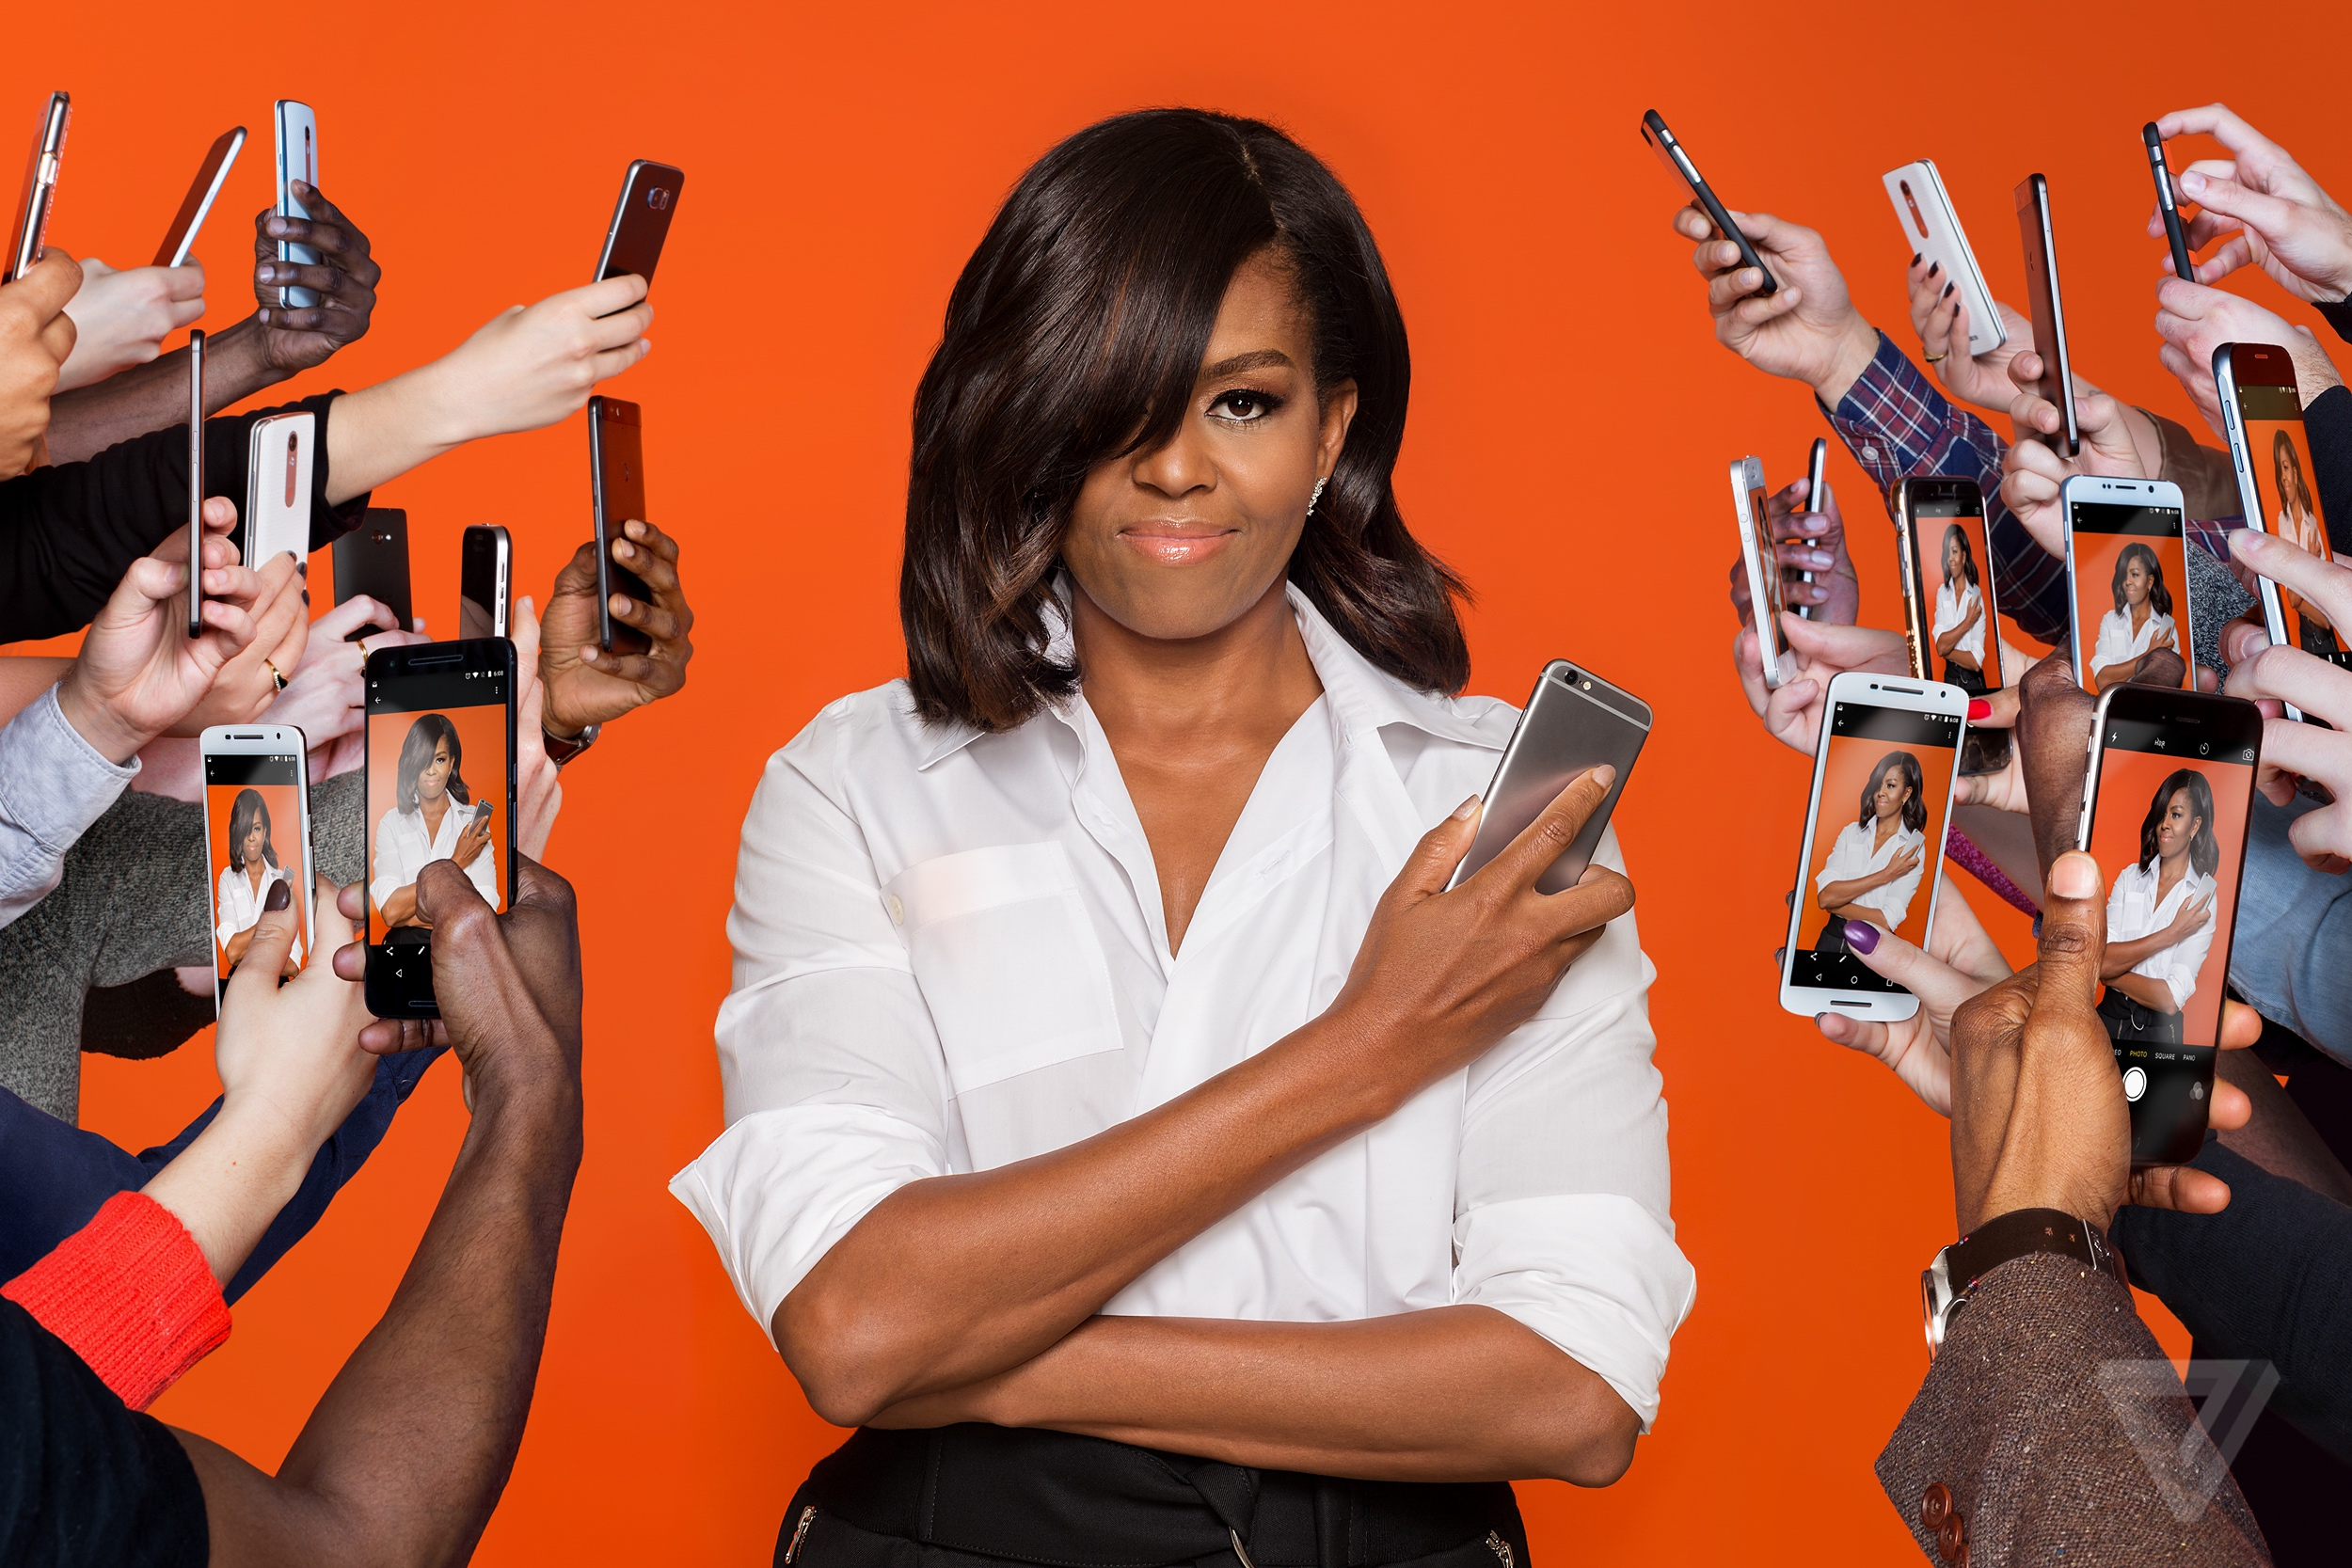 Flotus (IMAGE: James Bareham, first published at The Verge)